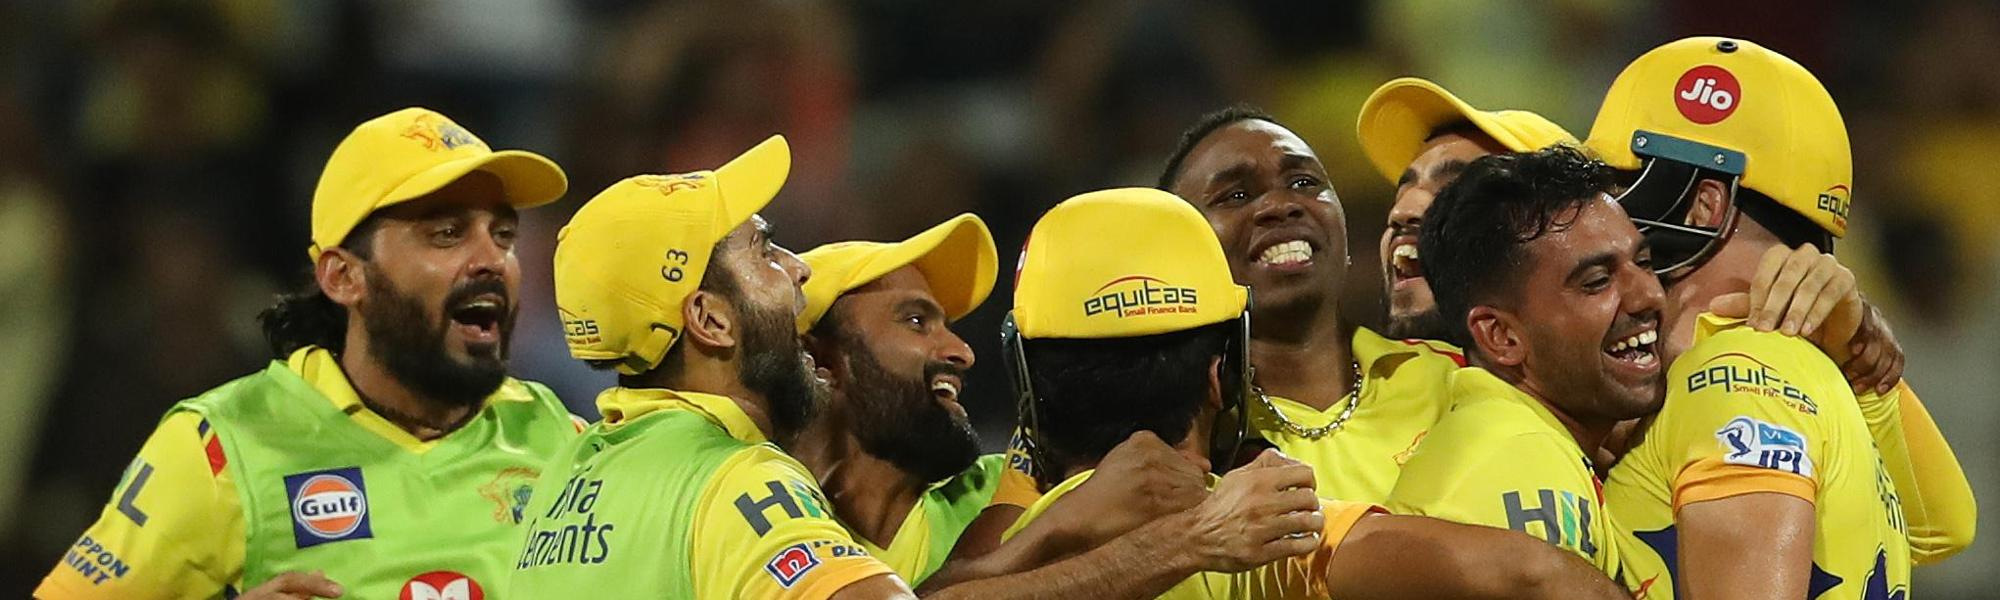 Chennai have impressed at IPL 2018 despite an ageing squad